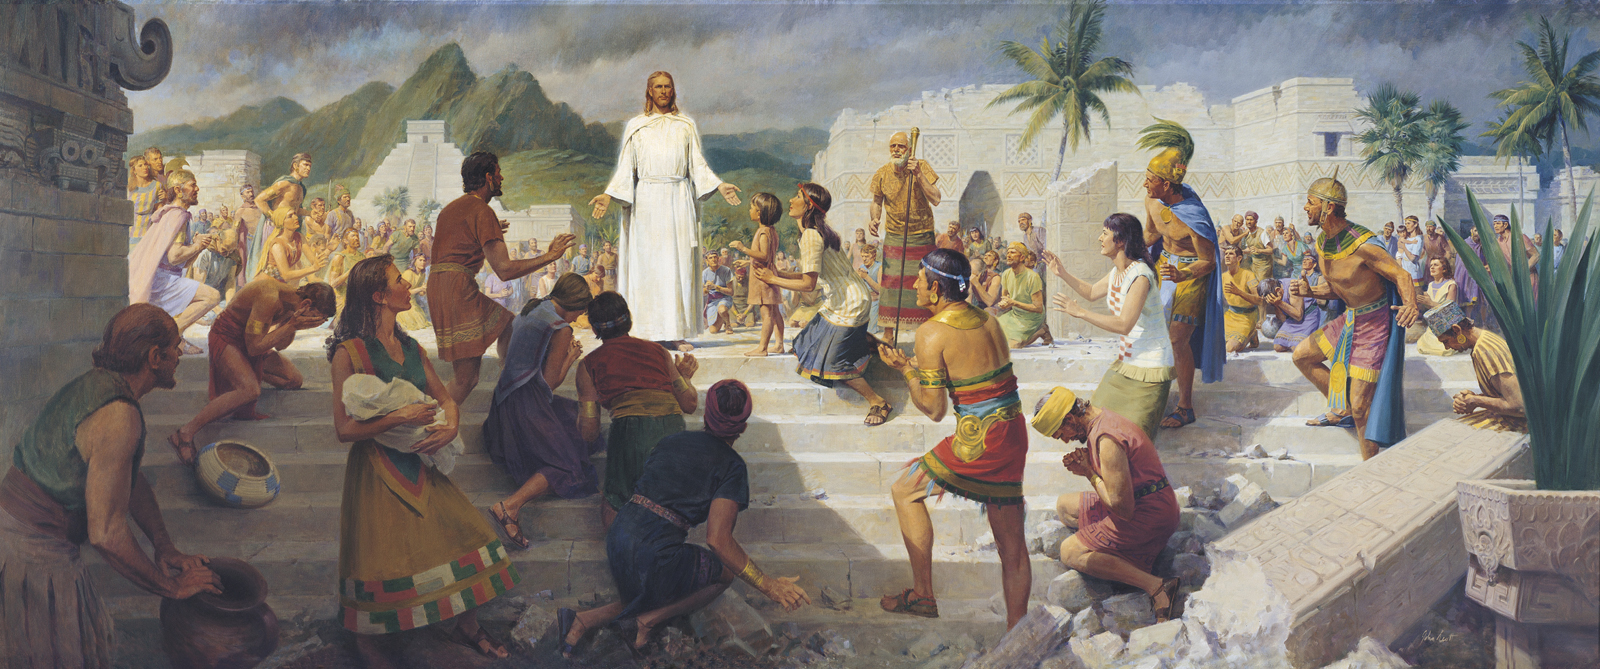 jesus teachings A summary of jesus' teachings during his three years of earthly ministry topics include the gospels, who is jesus, god's love for mankind, the kingdom of god, love the lord your god, love.